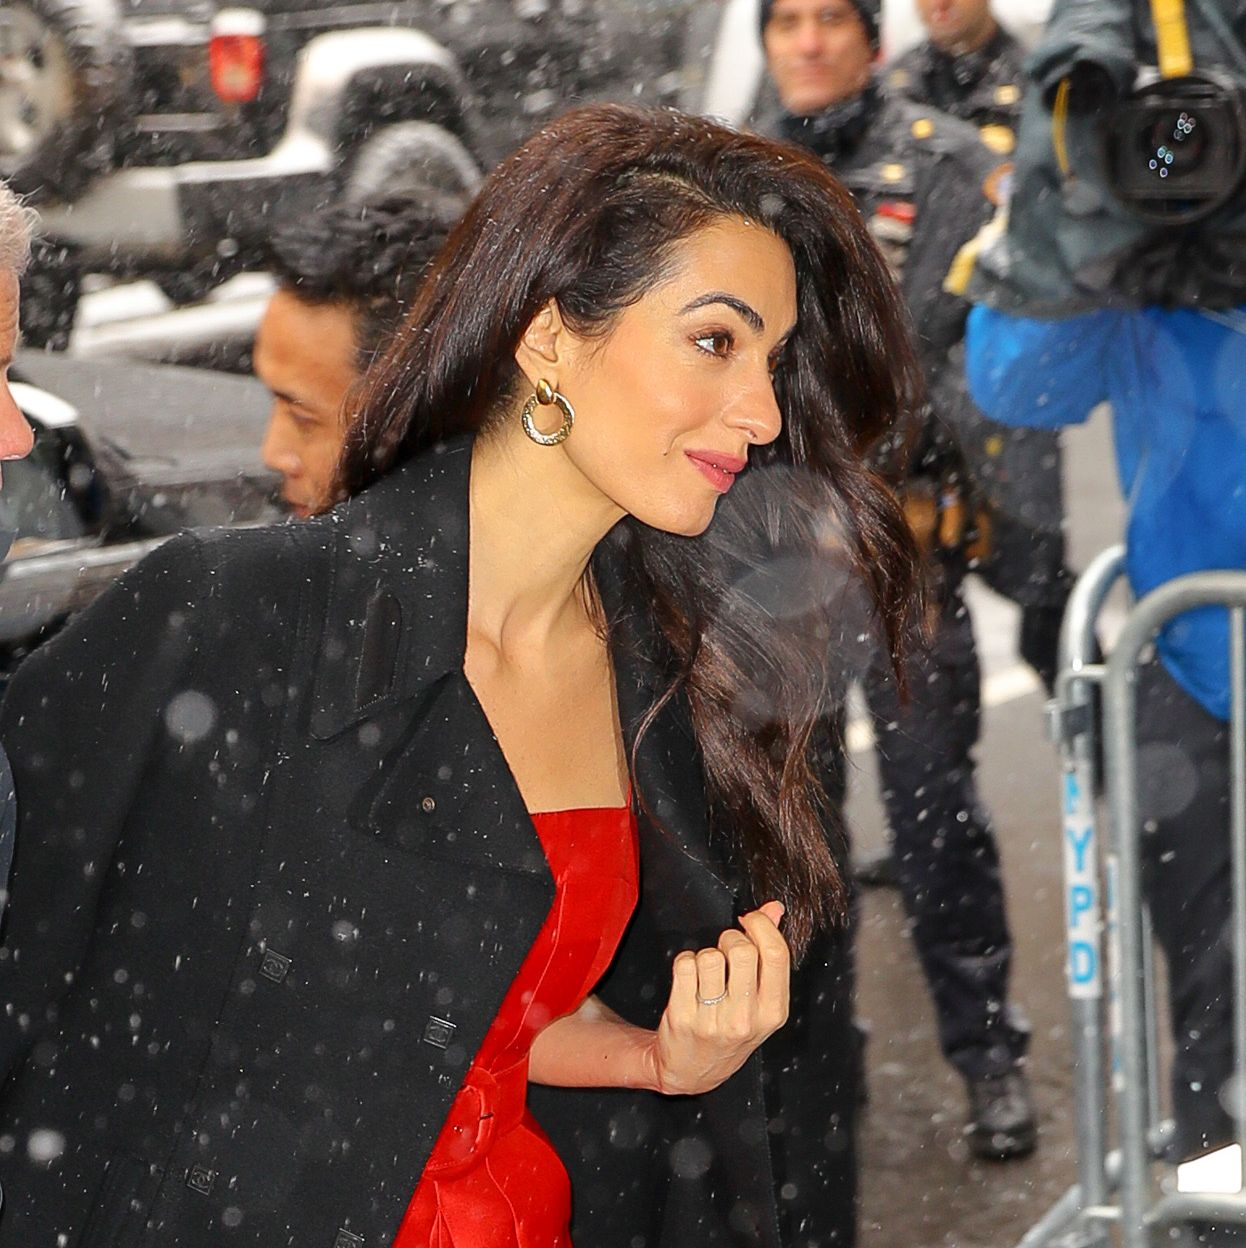 Amal Clooney Stuns in a Bright Red Jumpsuit at Meghan Markle's Baby Shower